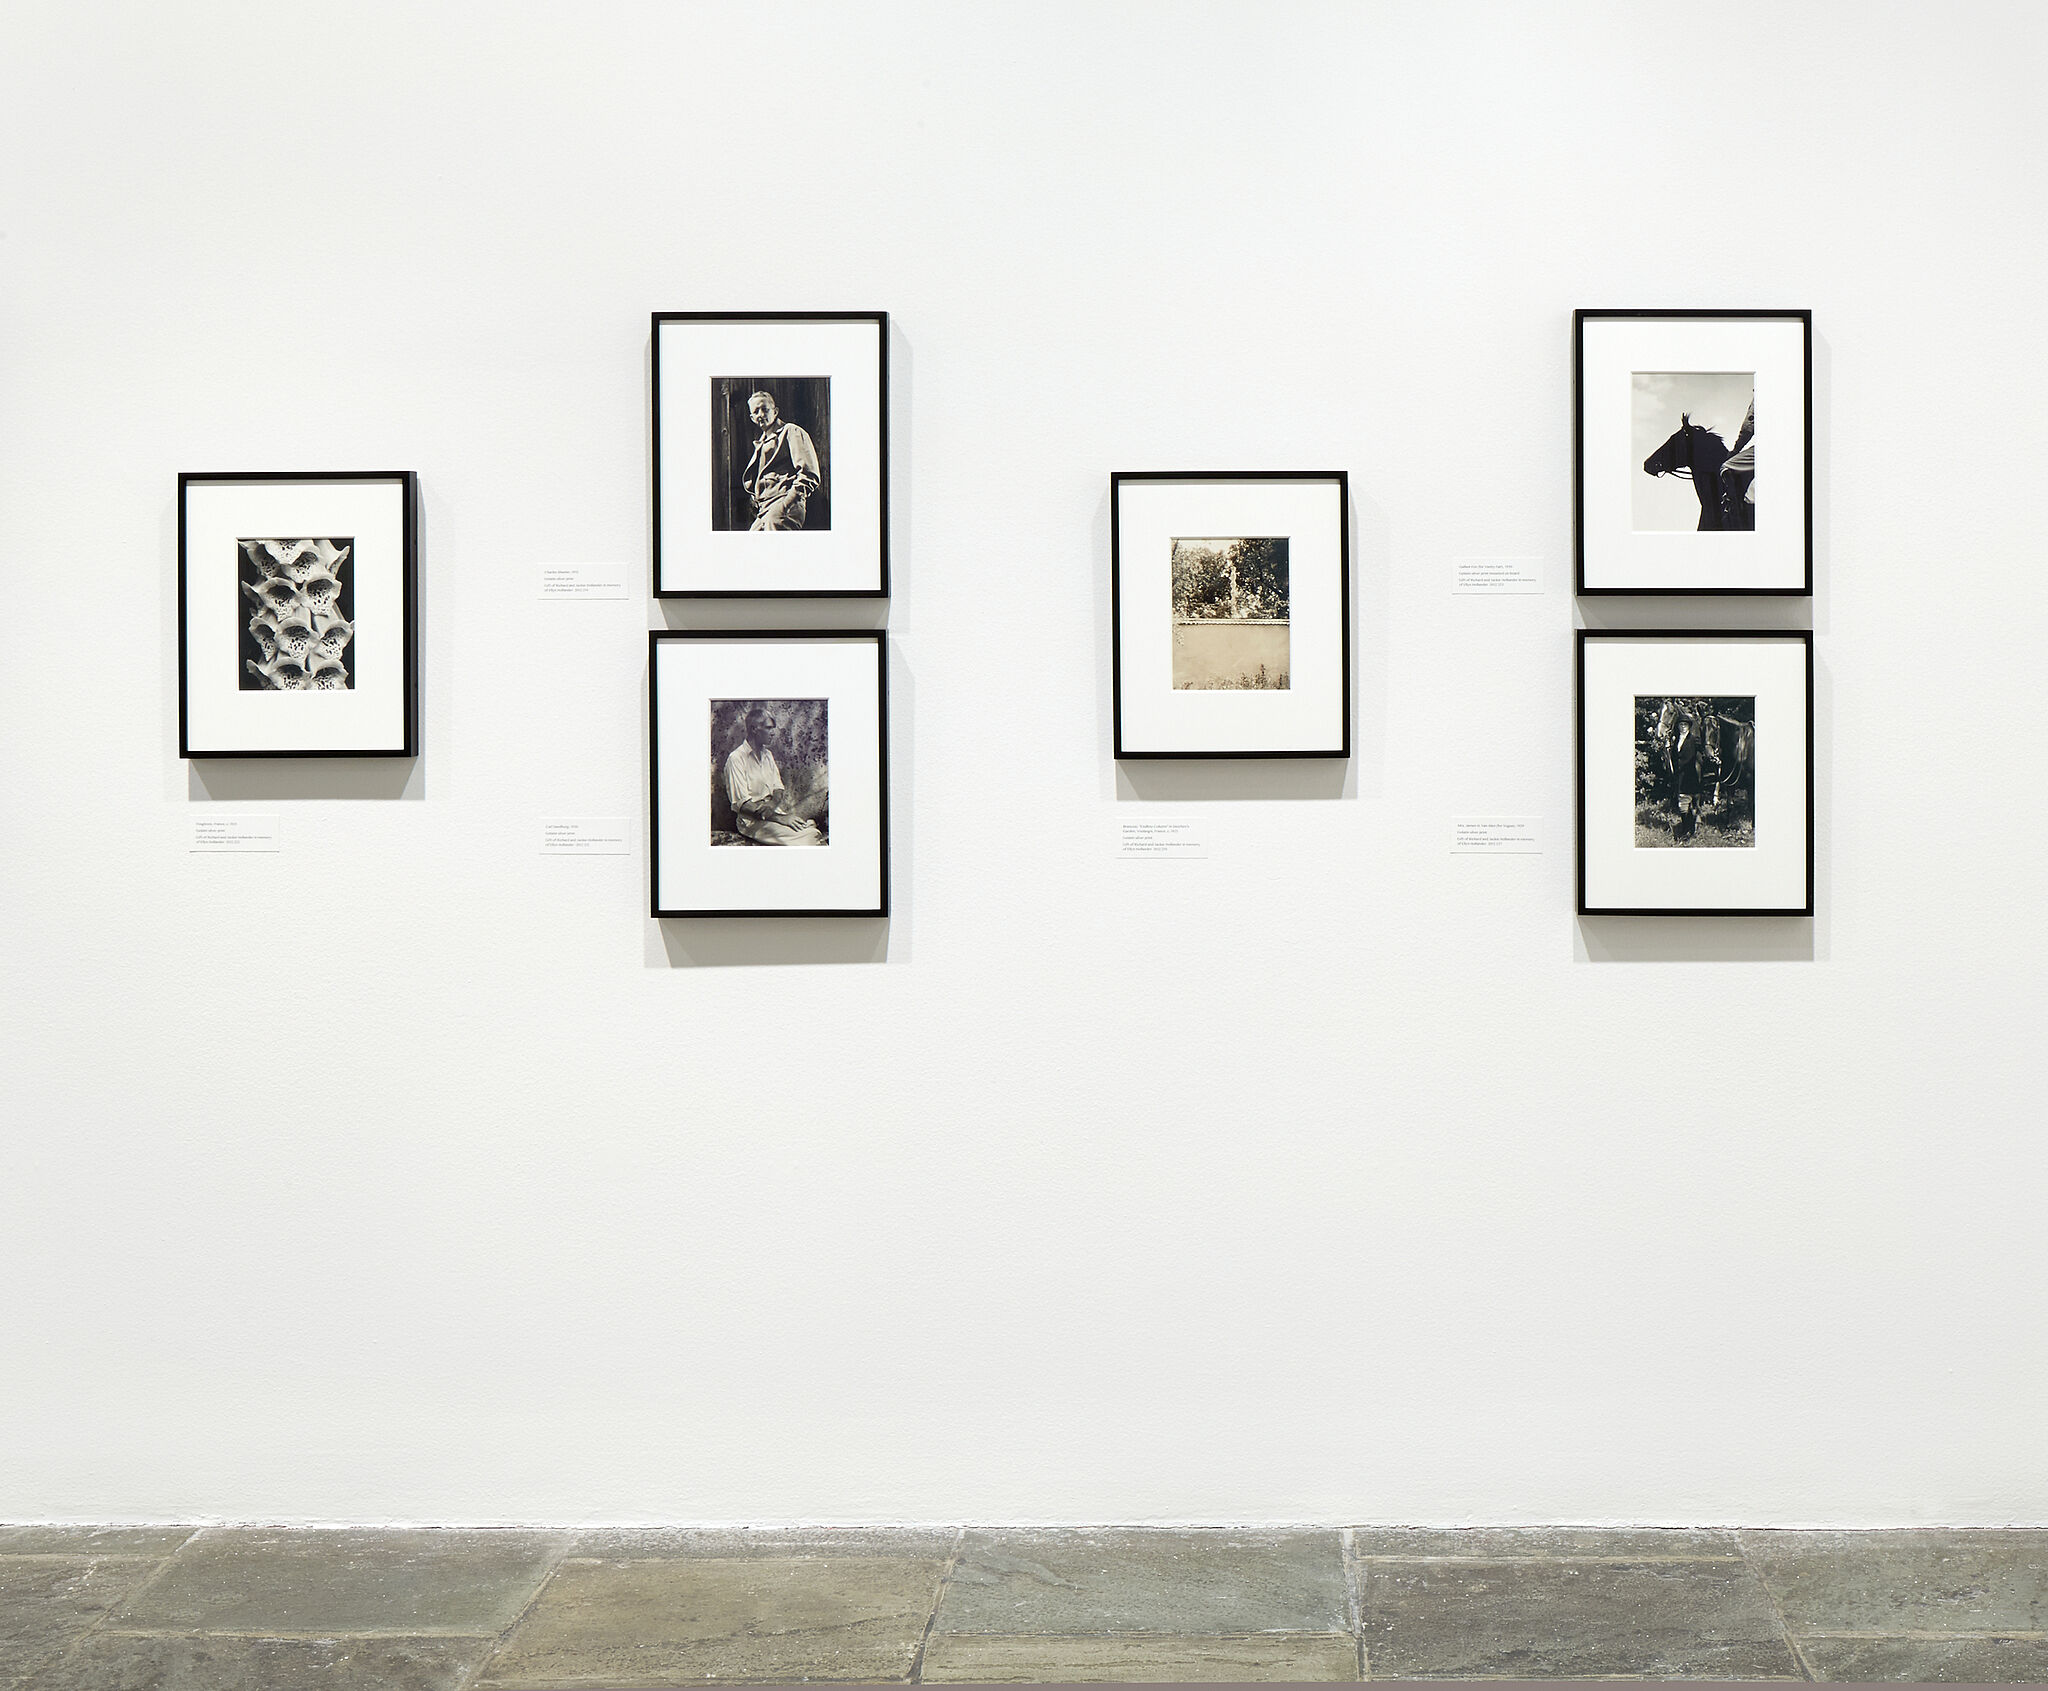 Six framed photographs on a gallery wall.